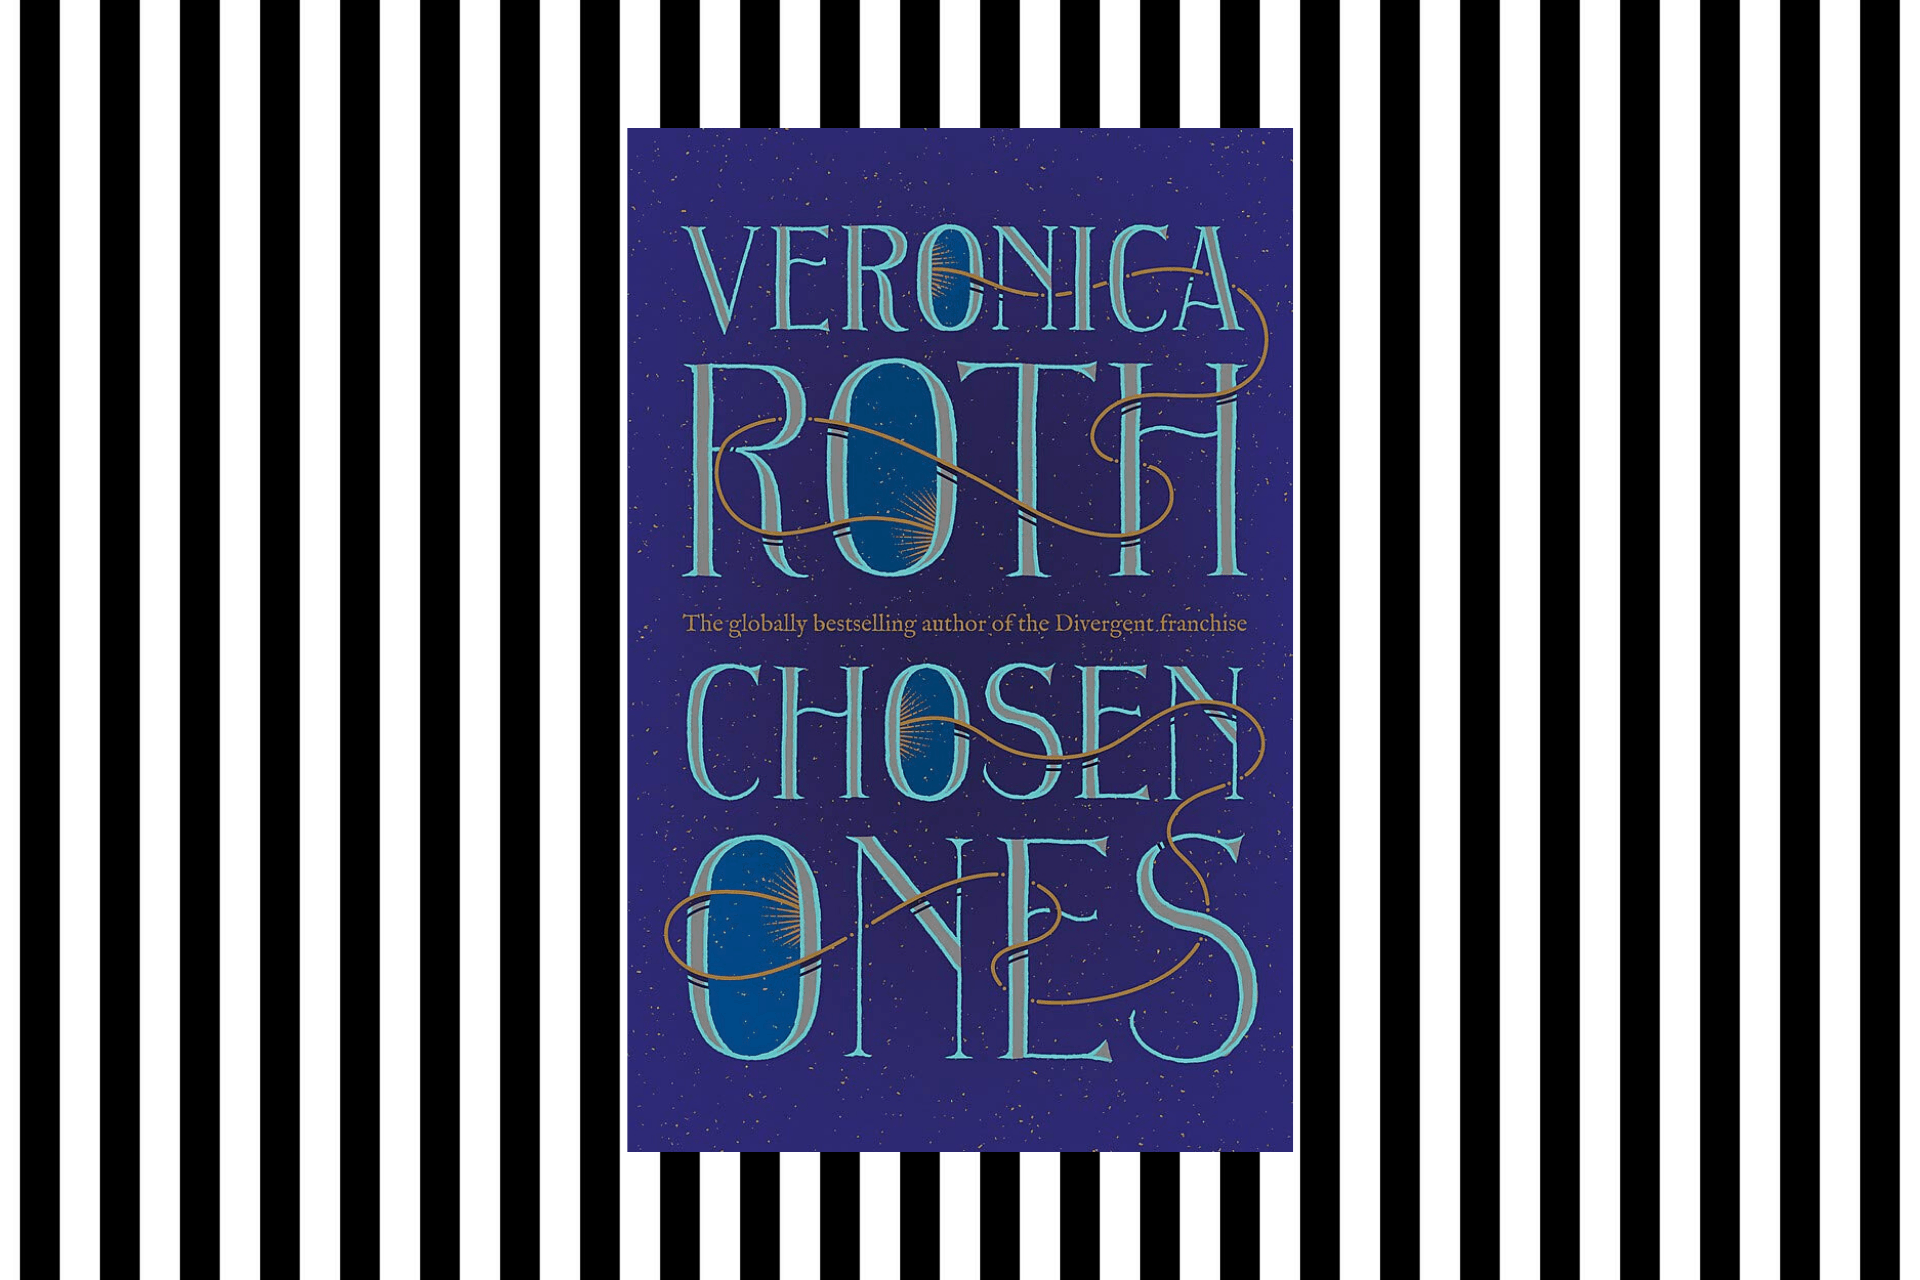 The cover of Chosen Ones by Veronica Roth